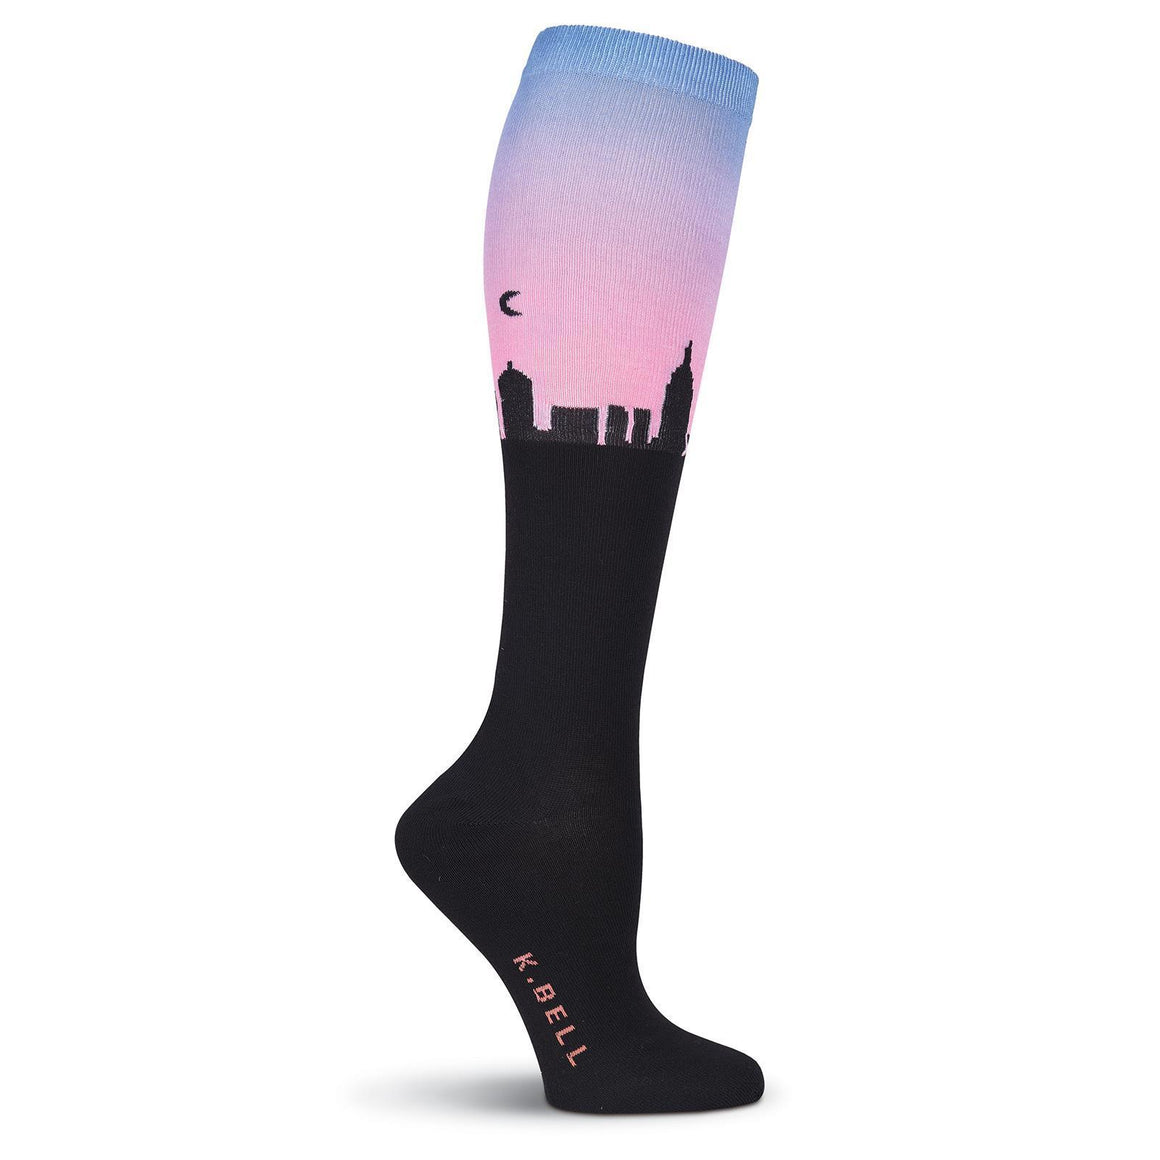 Skyline at Dusk Knee High Socks - XEJRA